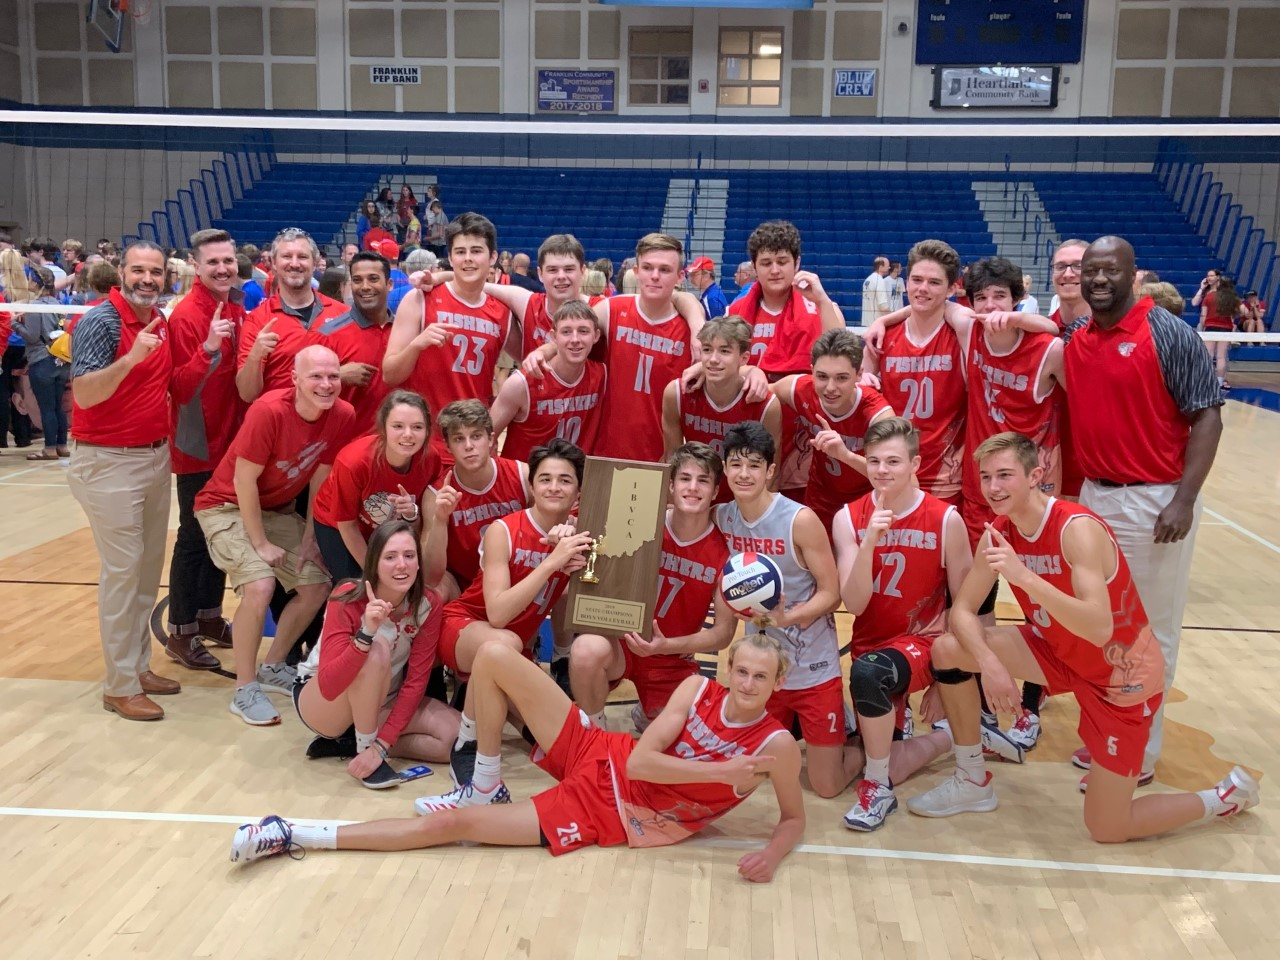 Fishers Boys Volleyball Wins State Championship